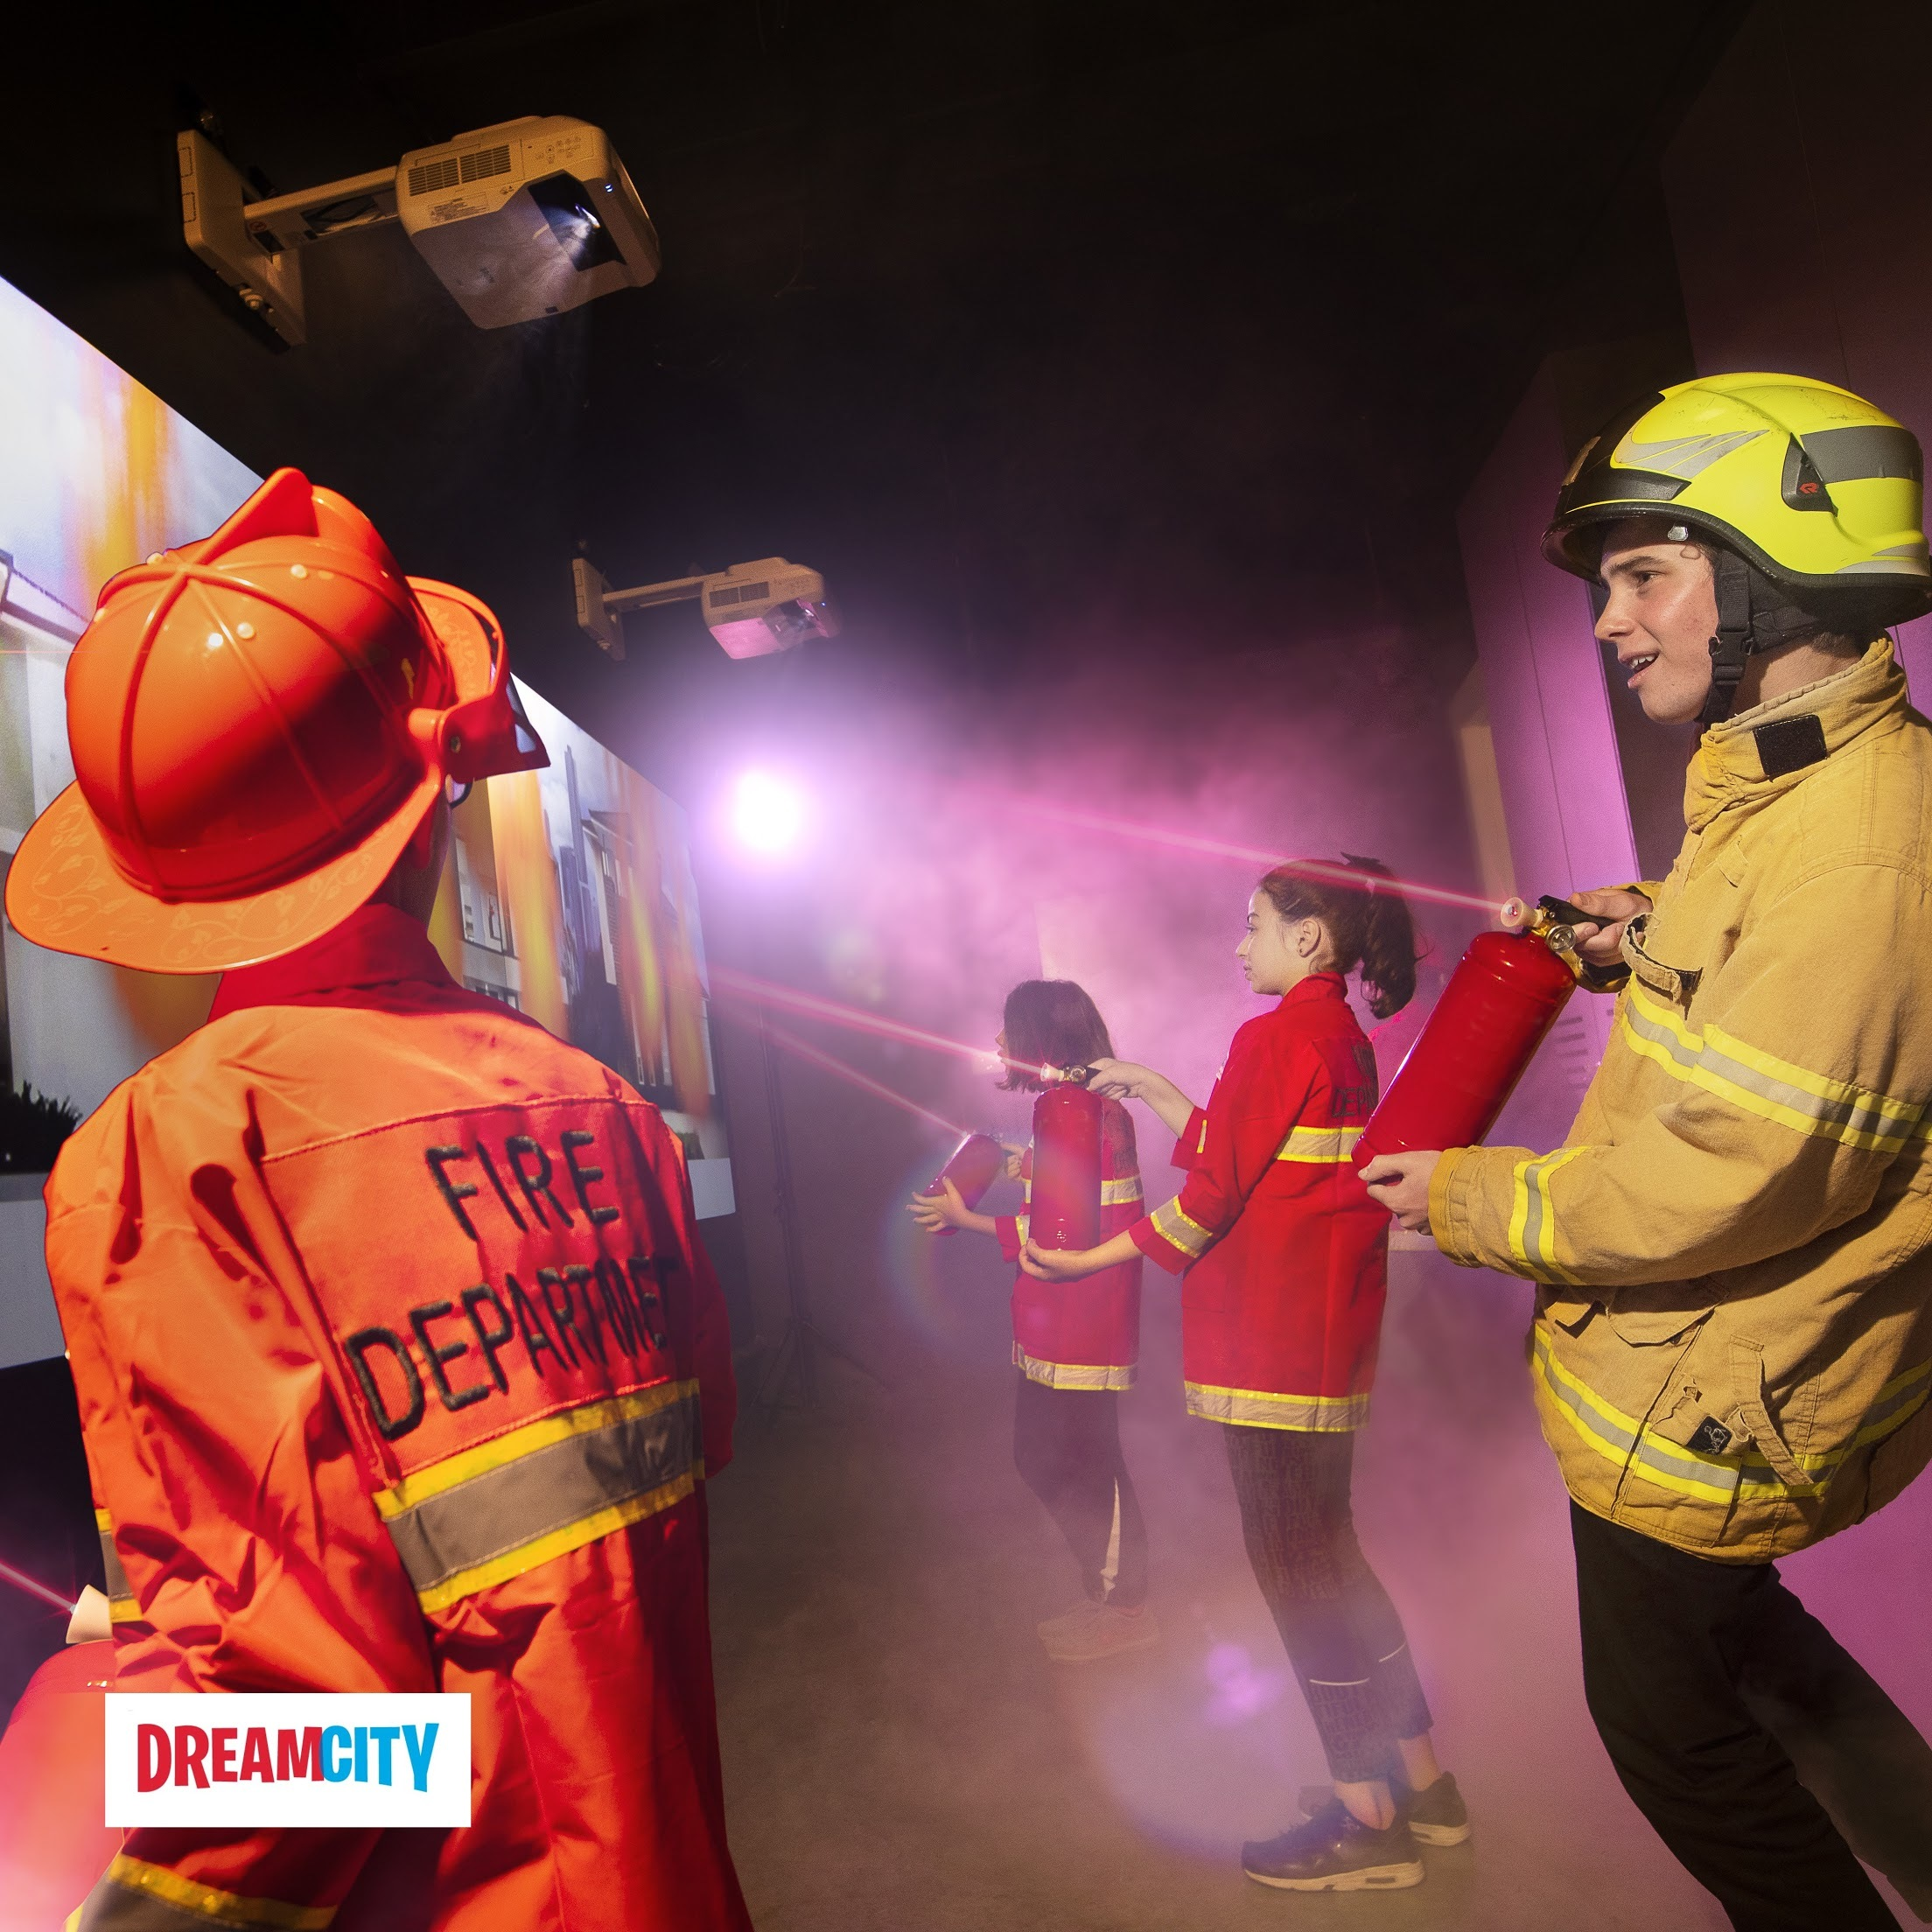 DreamCity firefighters